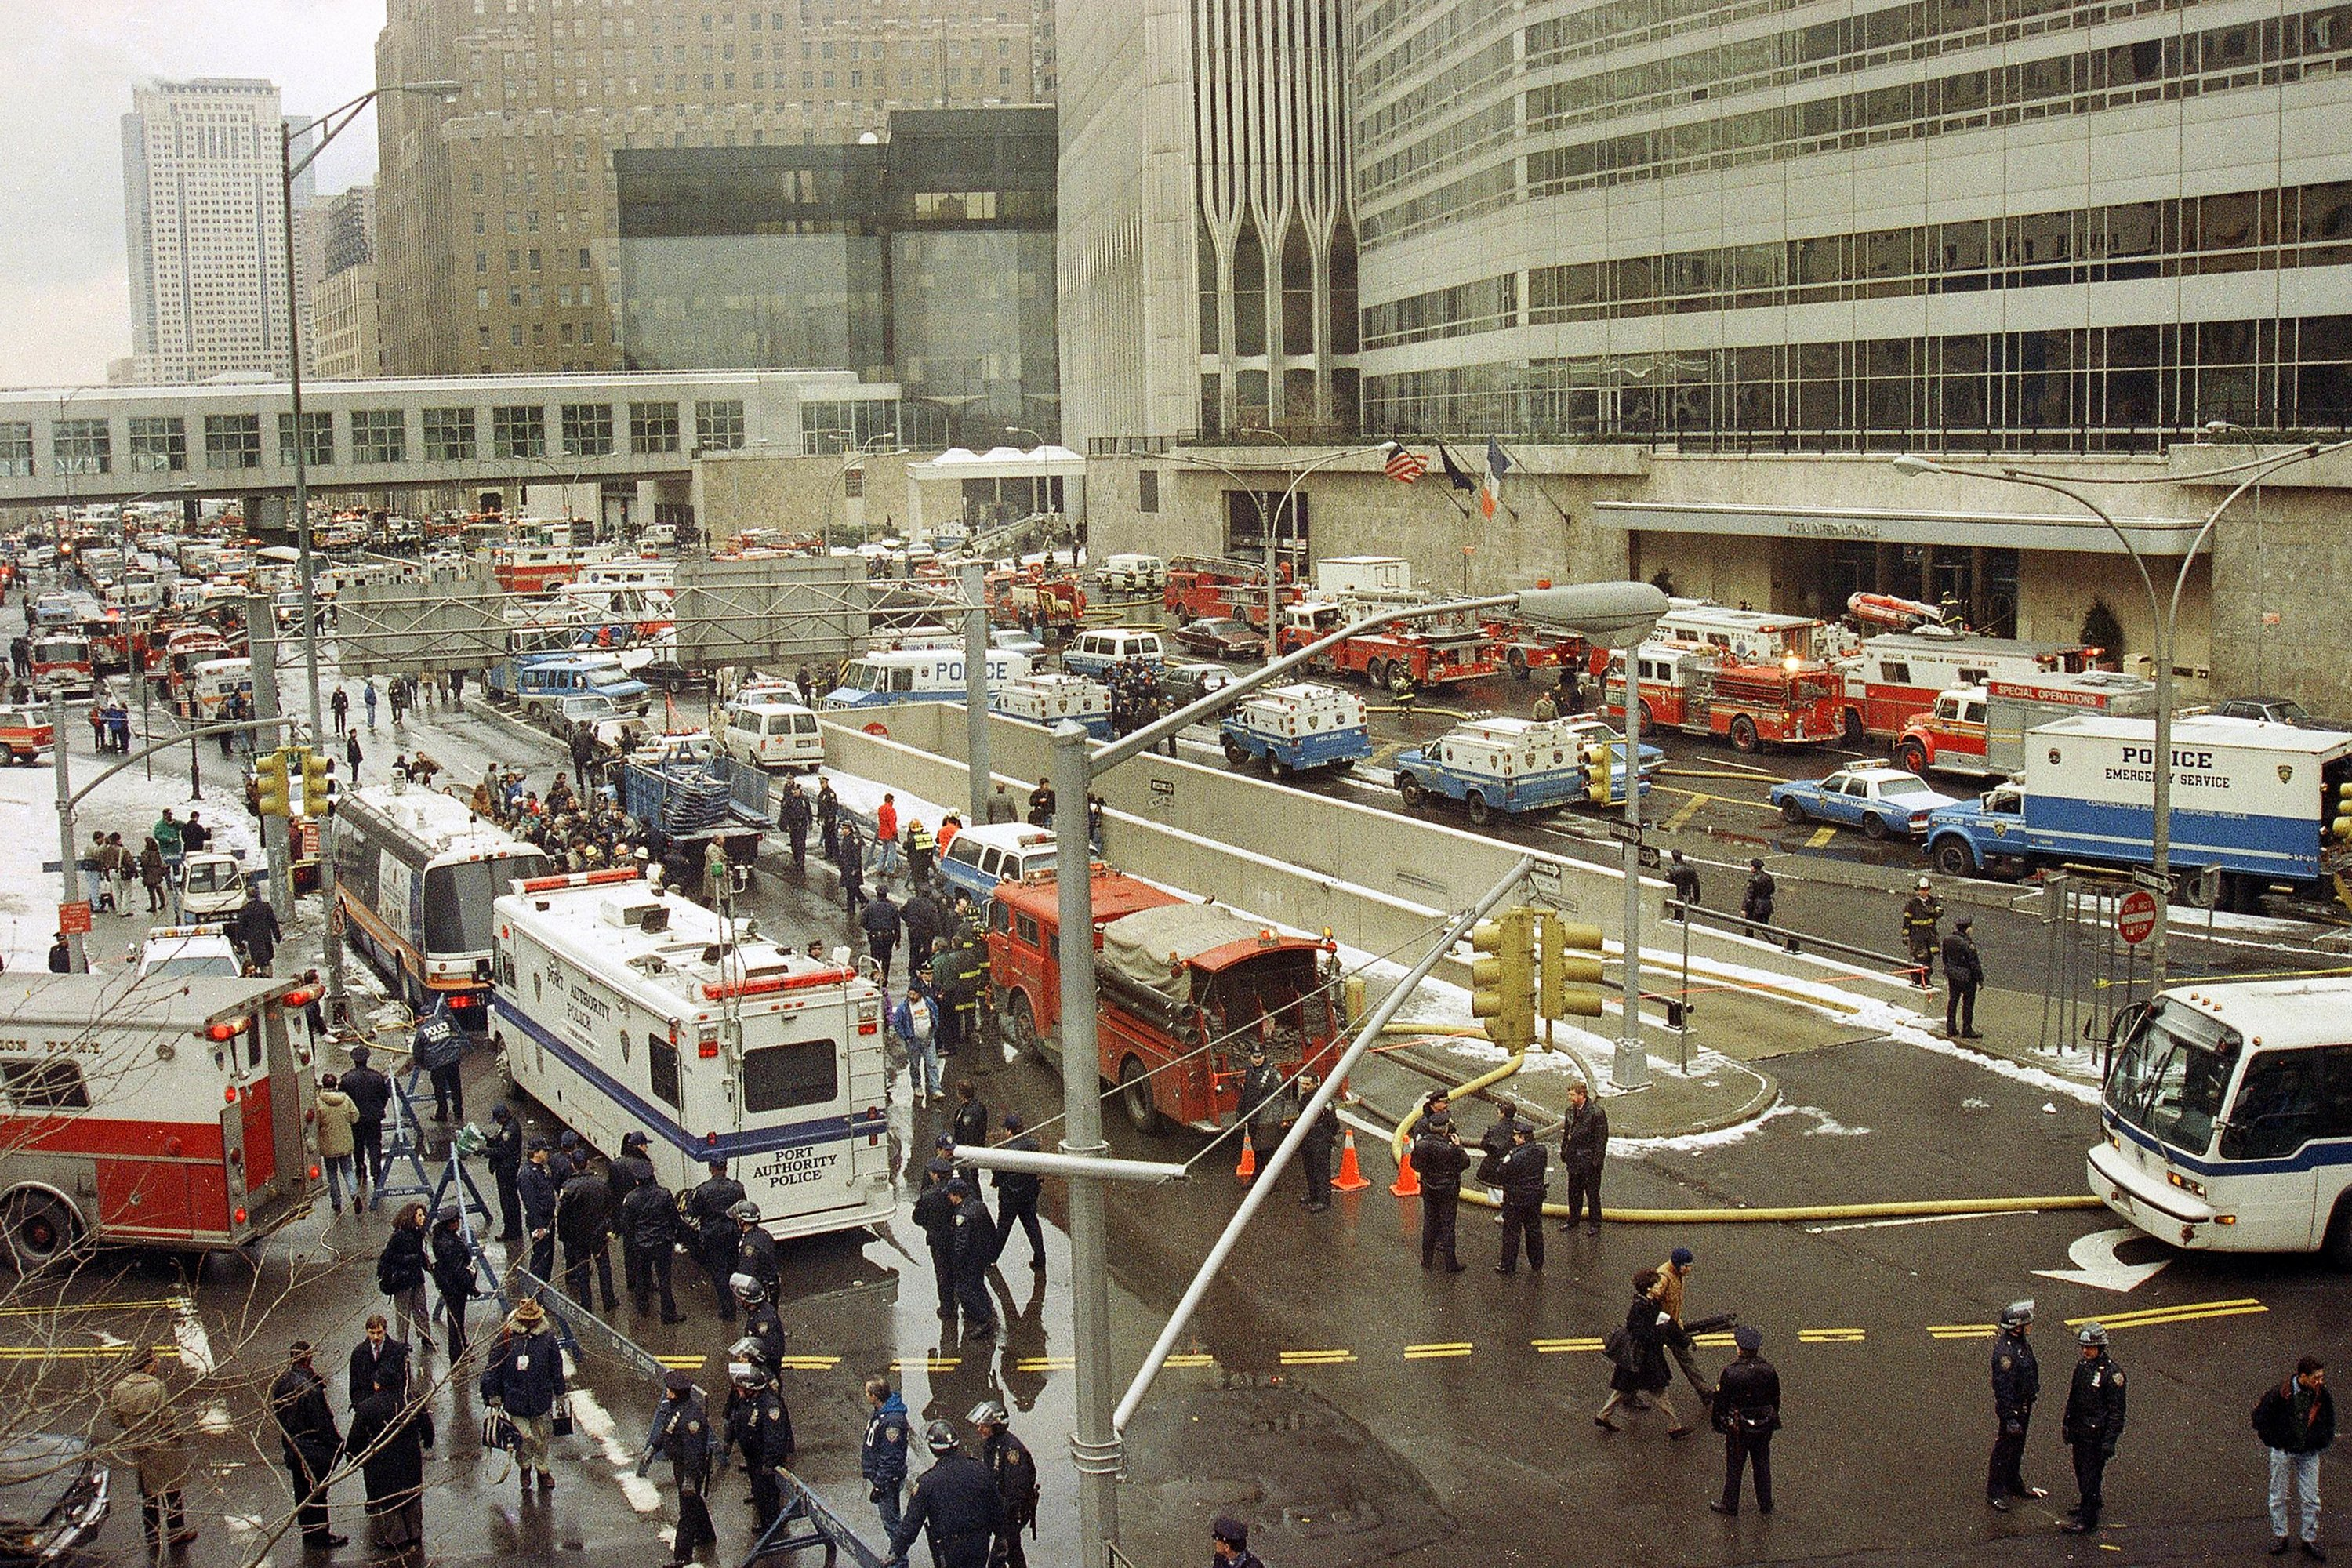 AP Was There: The 1993 bombing of the World Trade Center